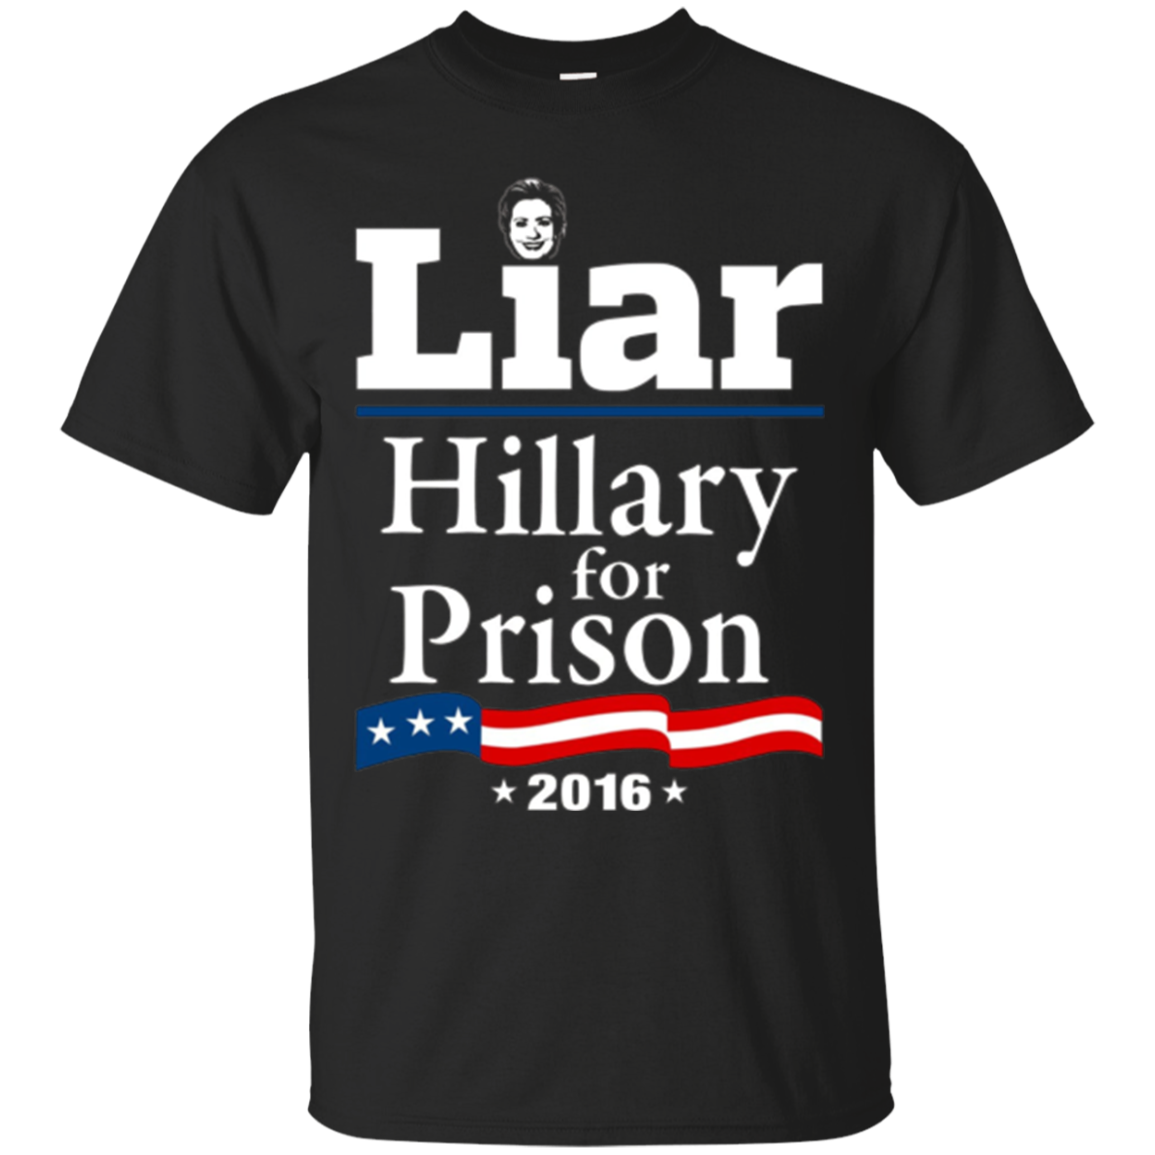 Hillary Clinton For Prison 2016 T-Shirt for Republicans